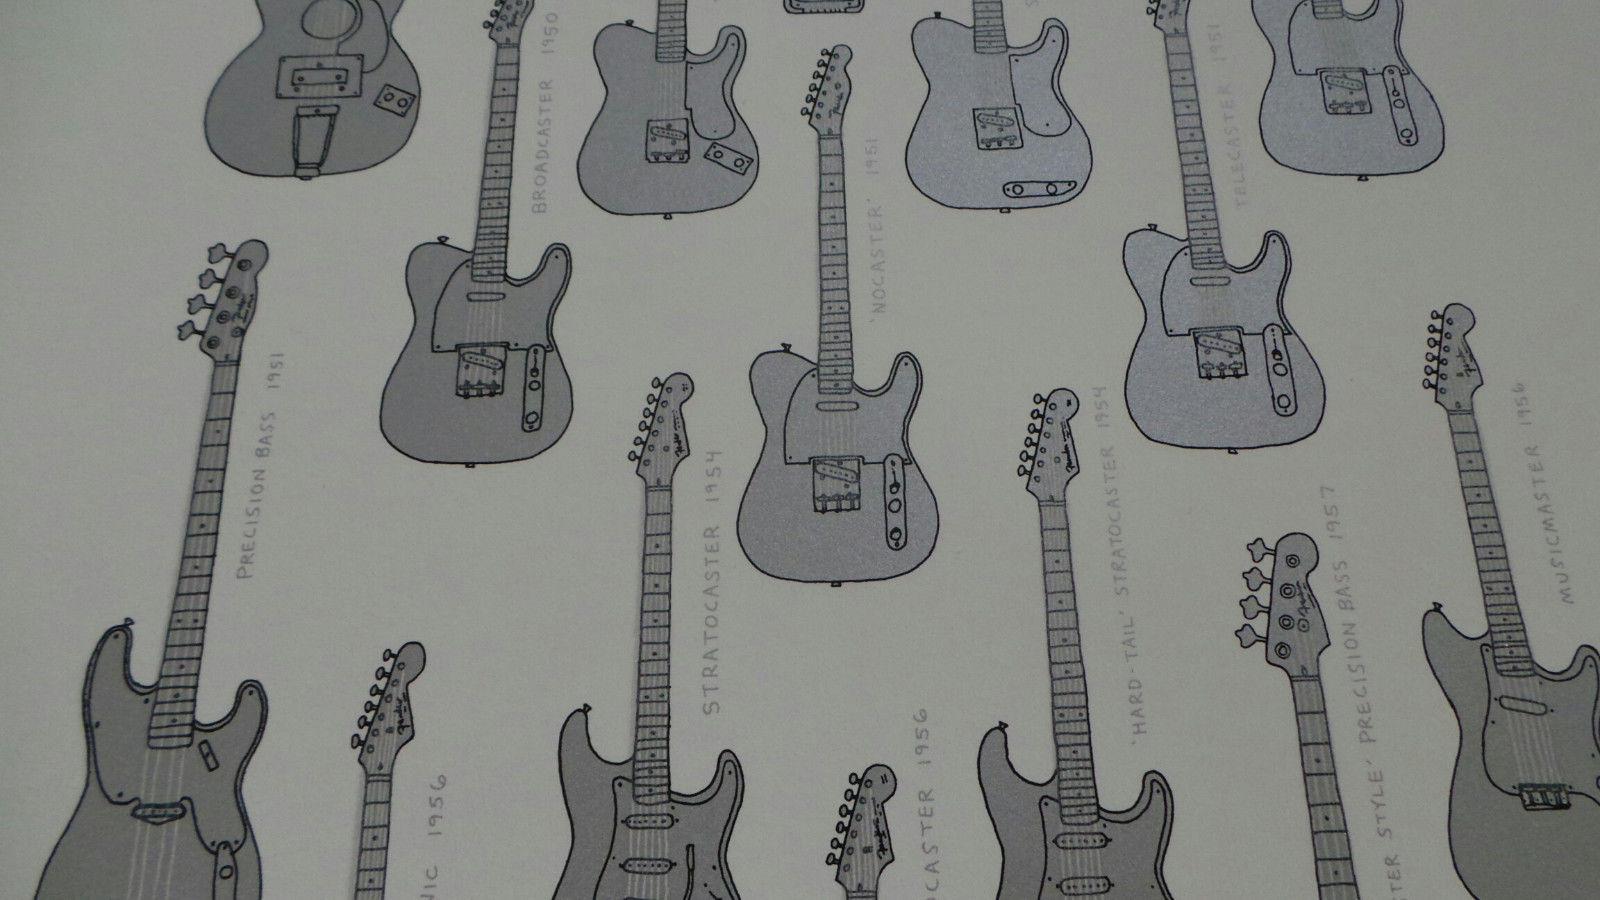 Electric Instrument Co Silver Edition Borshard Screenprint Poster Fender Guitars